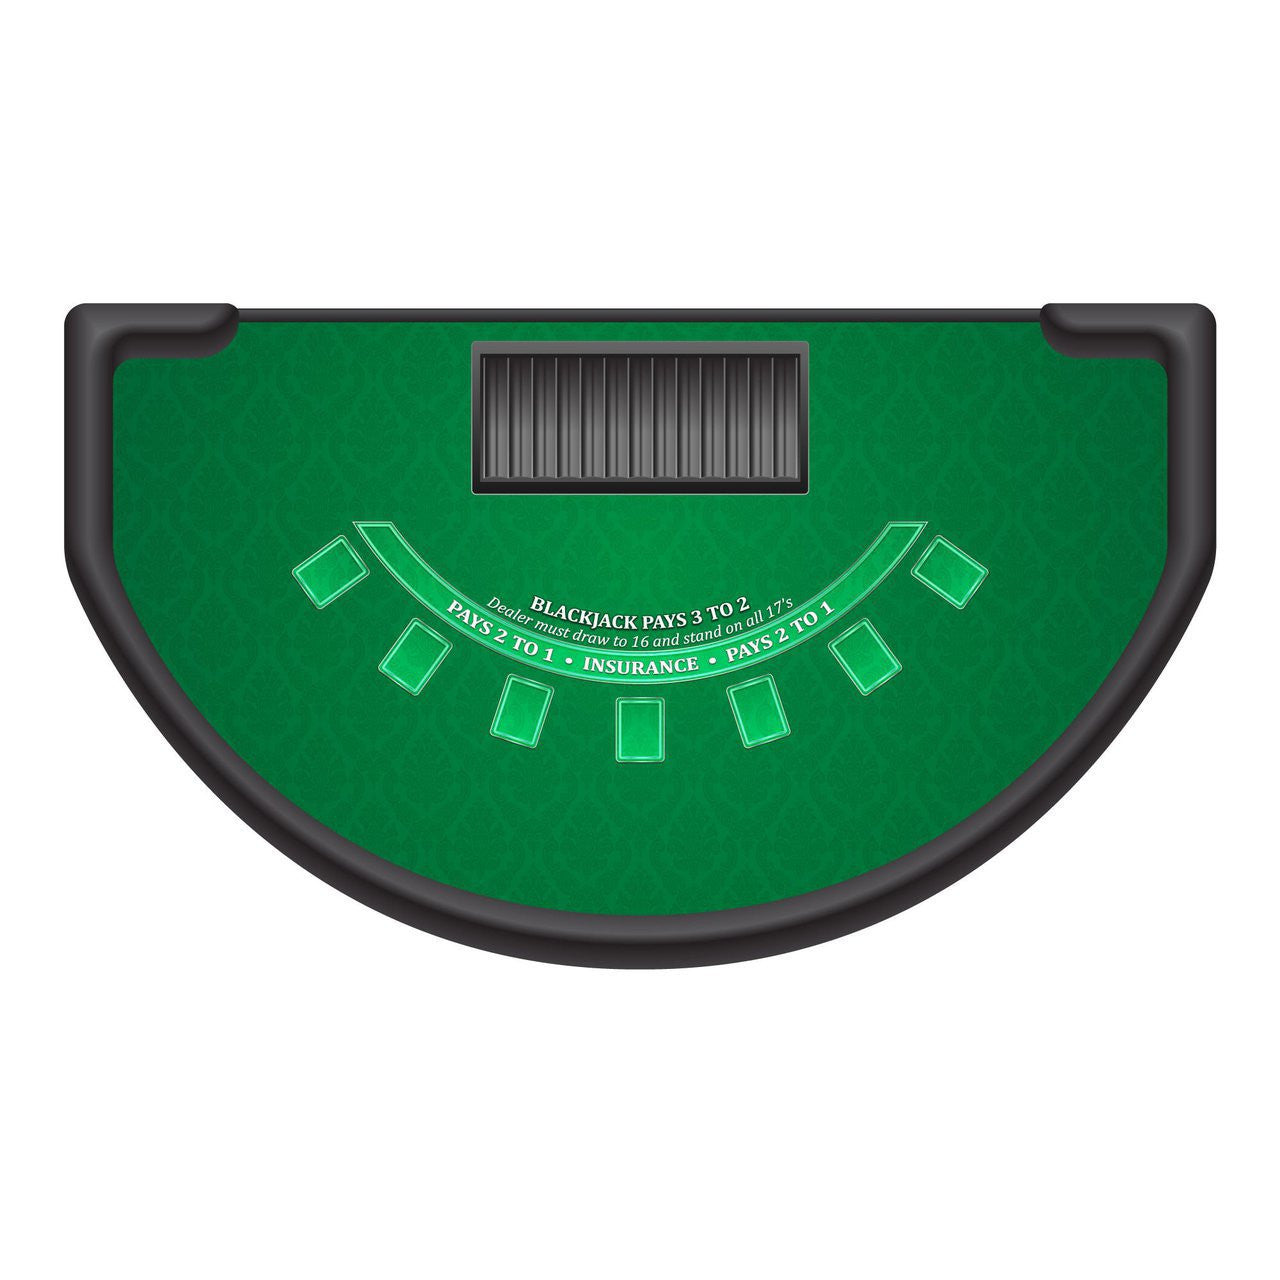 Blackjack table top view - Classic Blackjack Layout Green Casino Supply